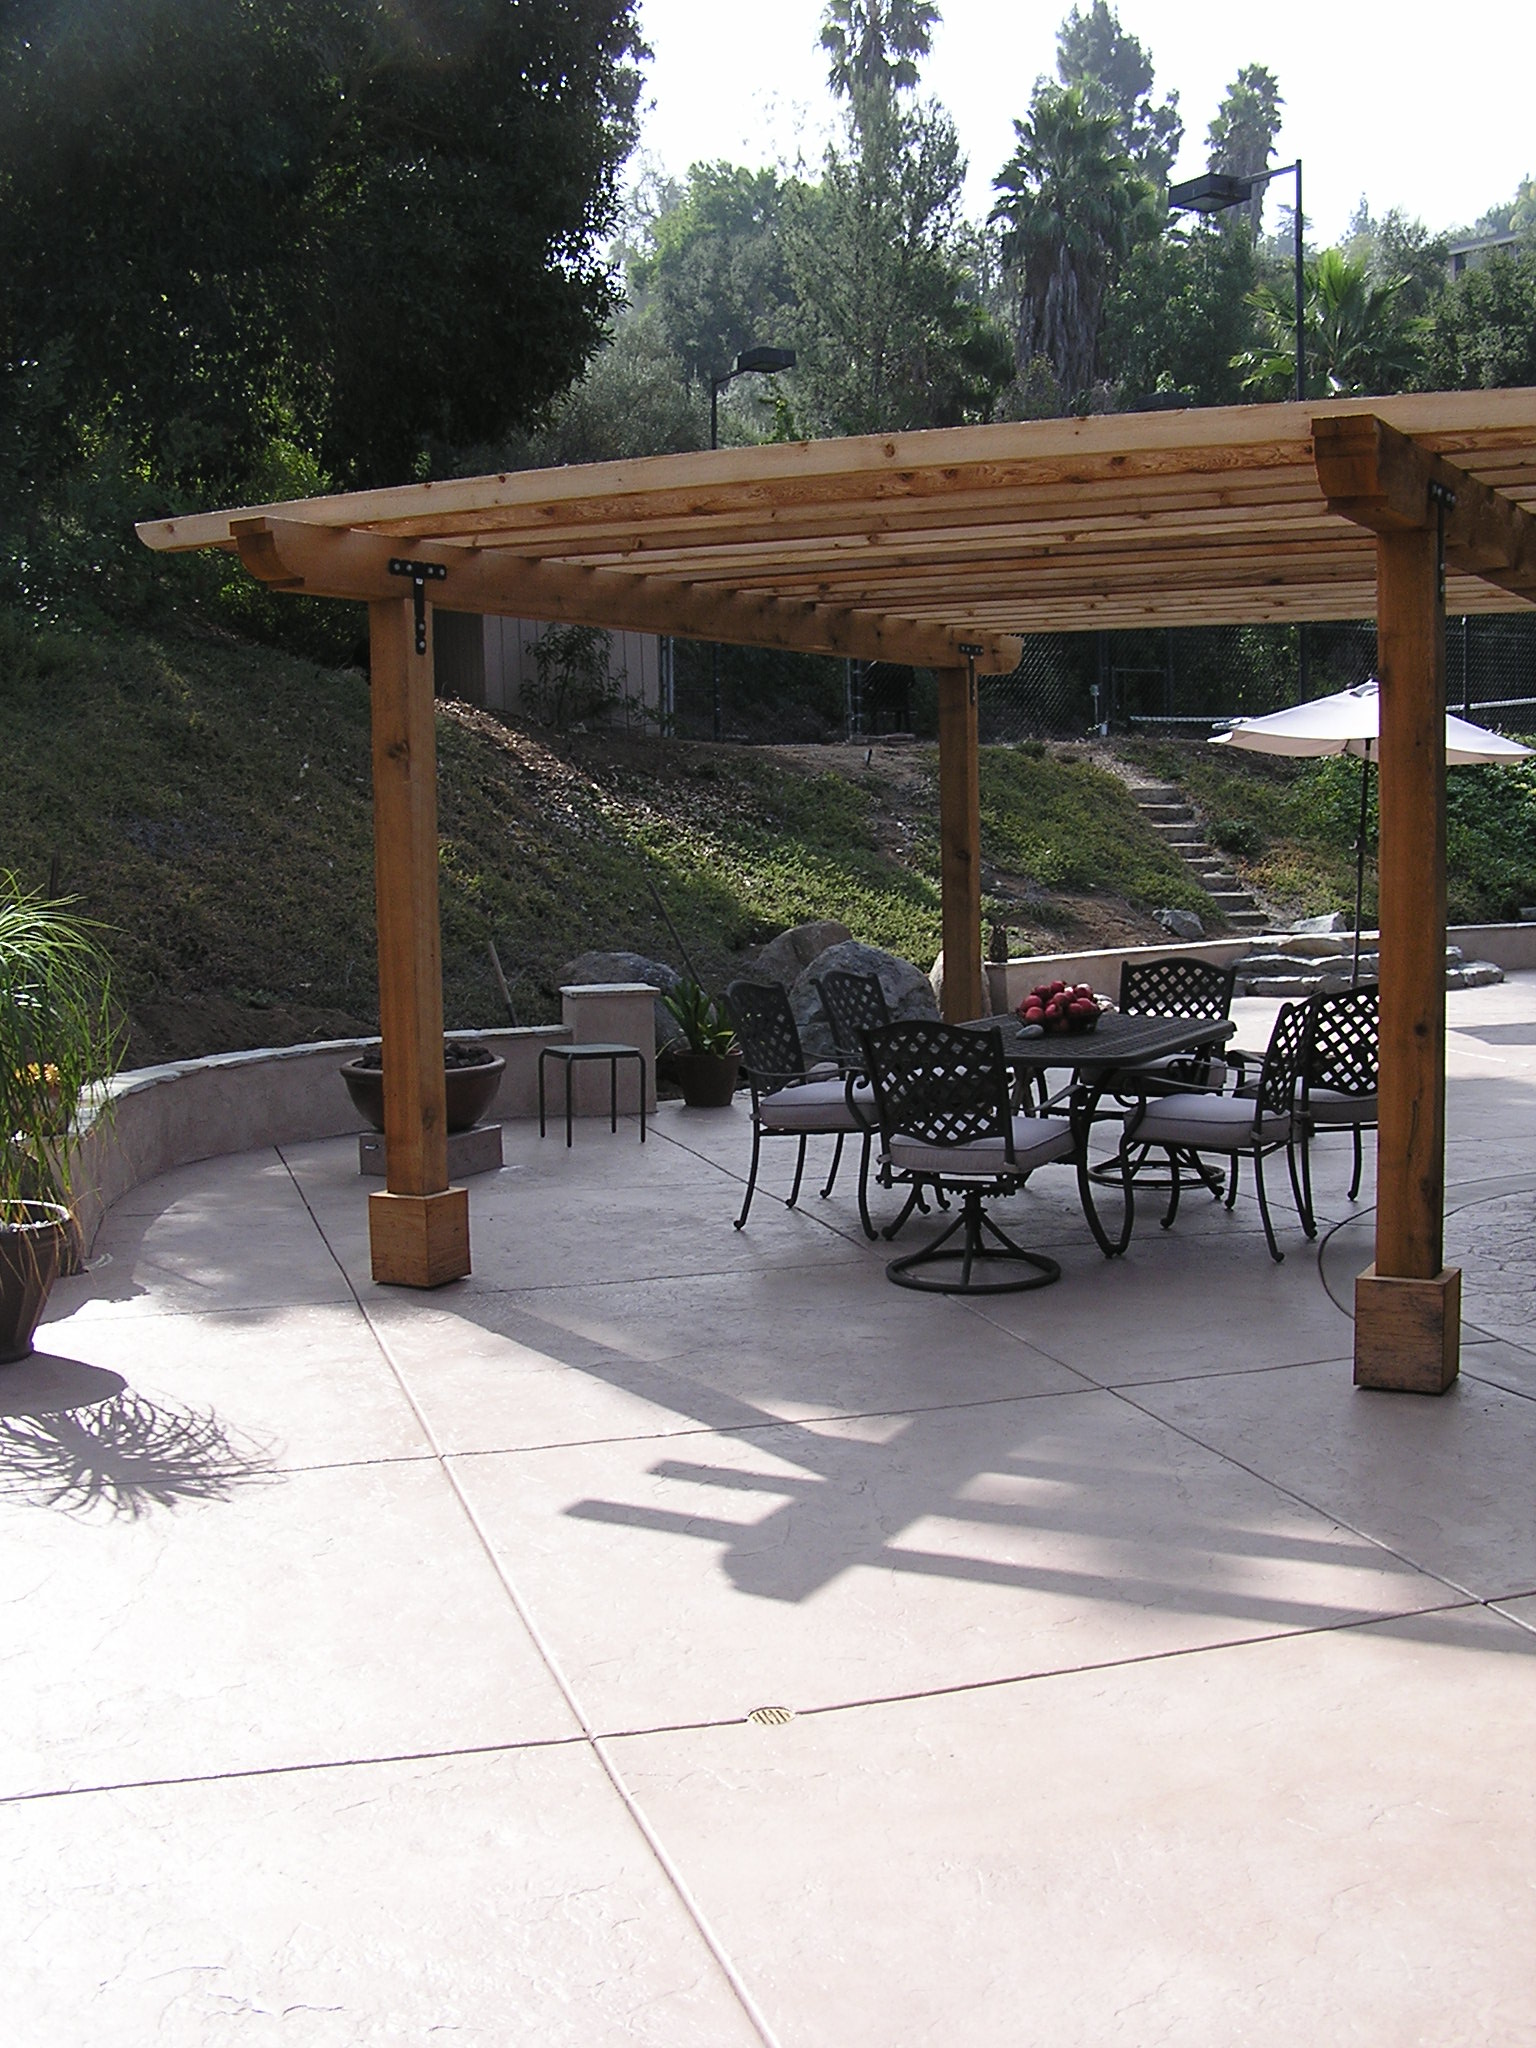 A Patio Cover Can Expand Your Outdoor Living Area